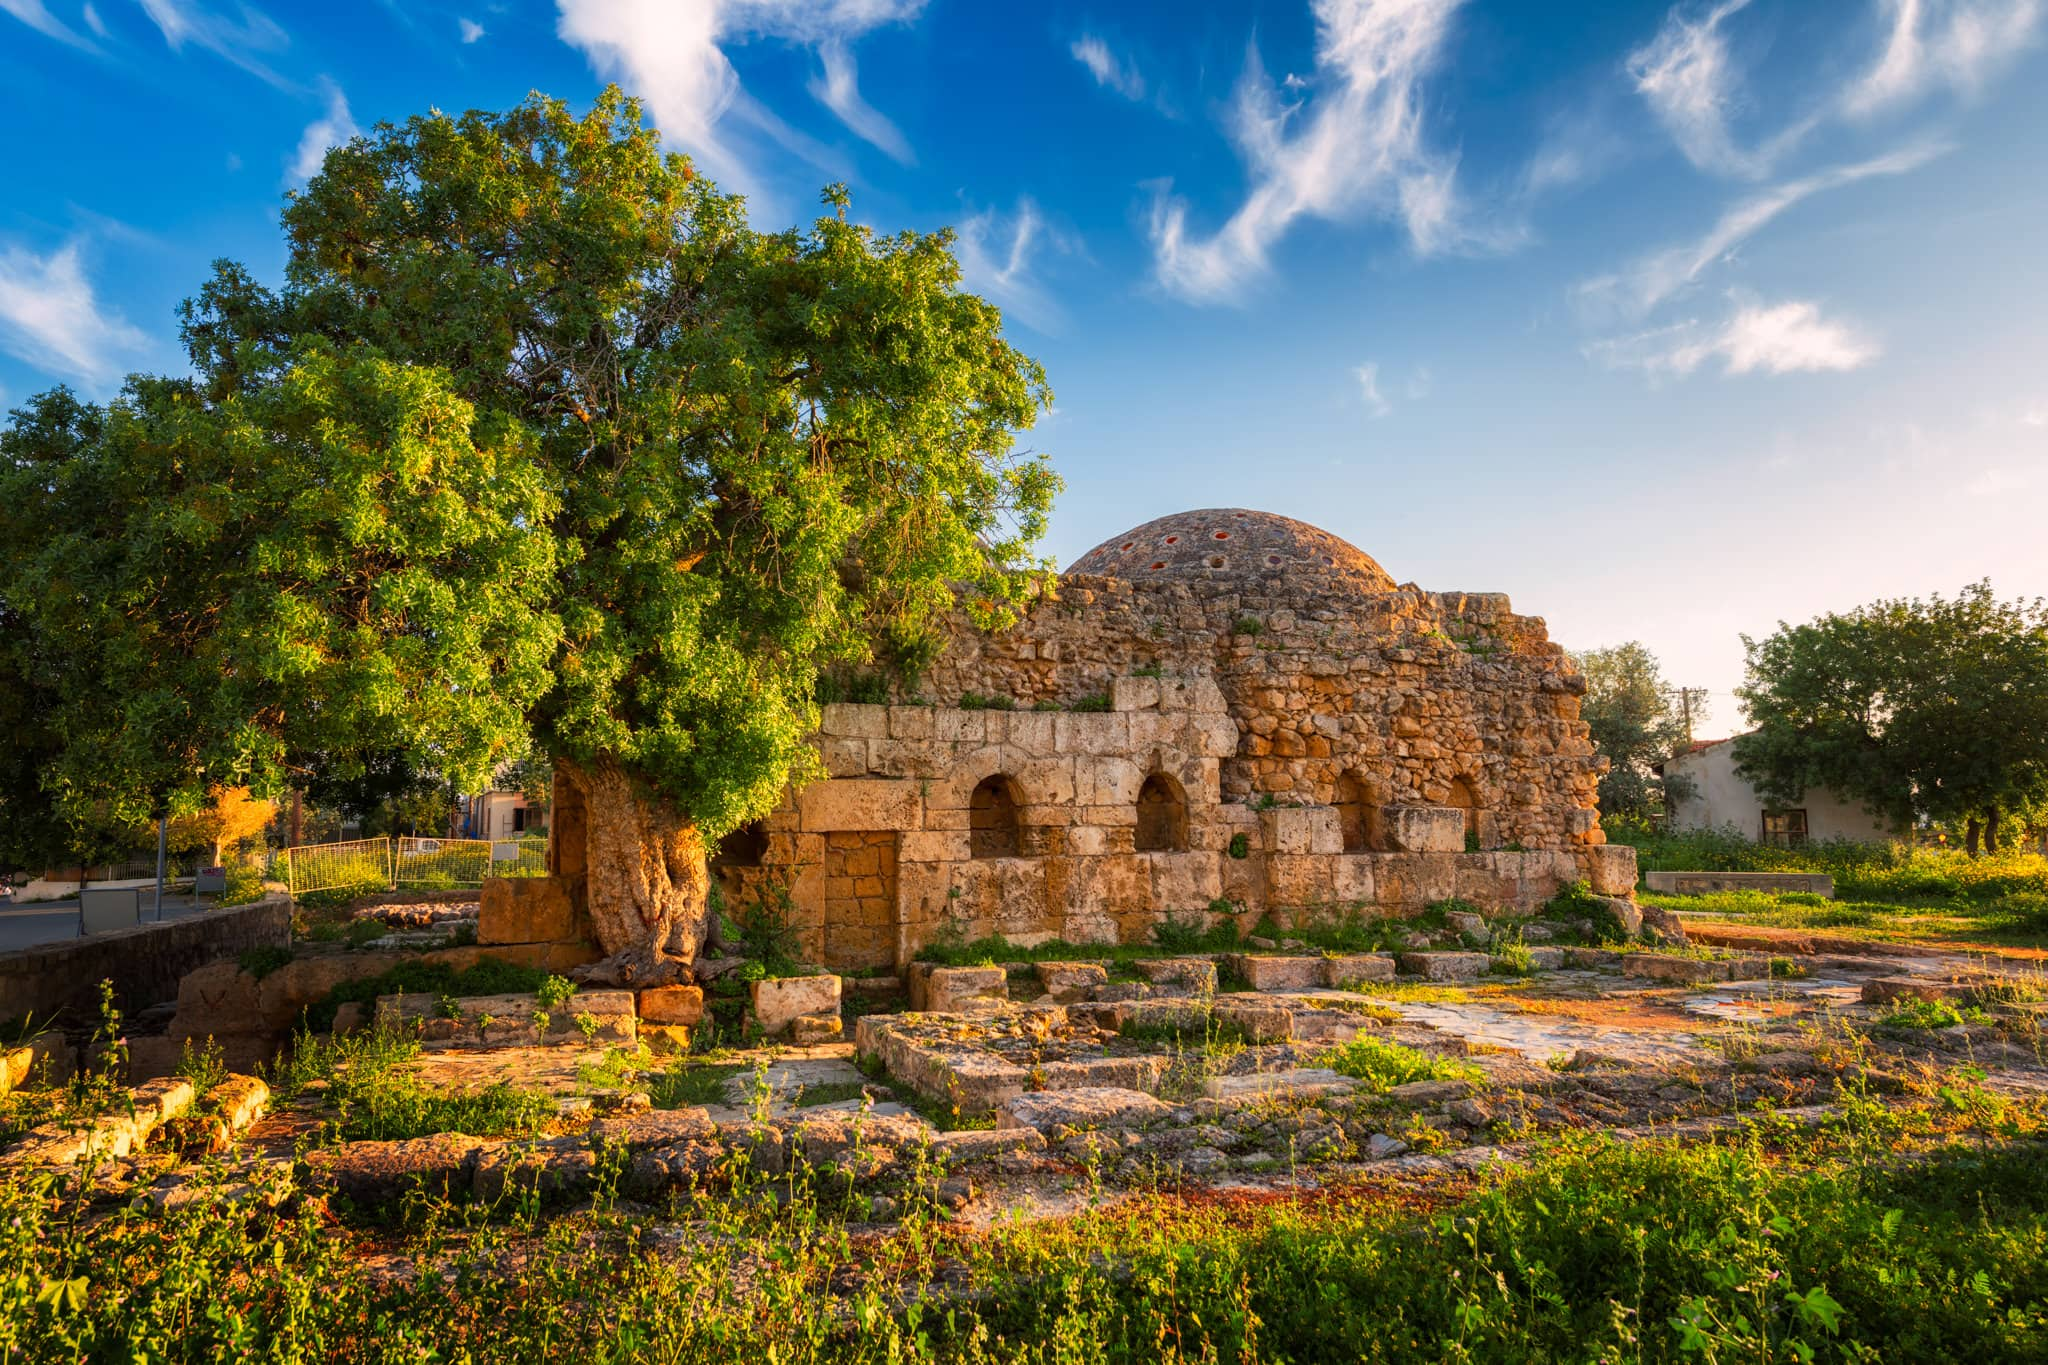 Ruins of The Ottoman Baths in Paphos, Cyprus.